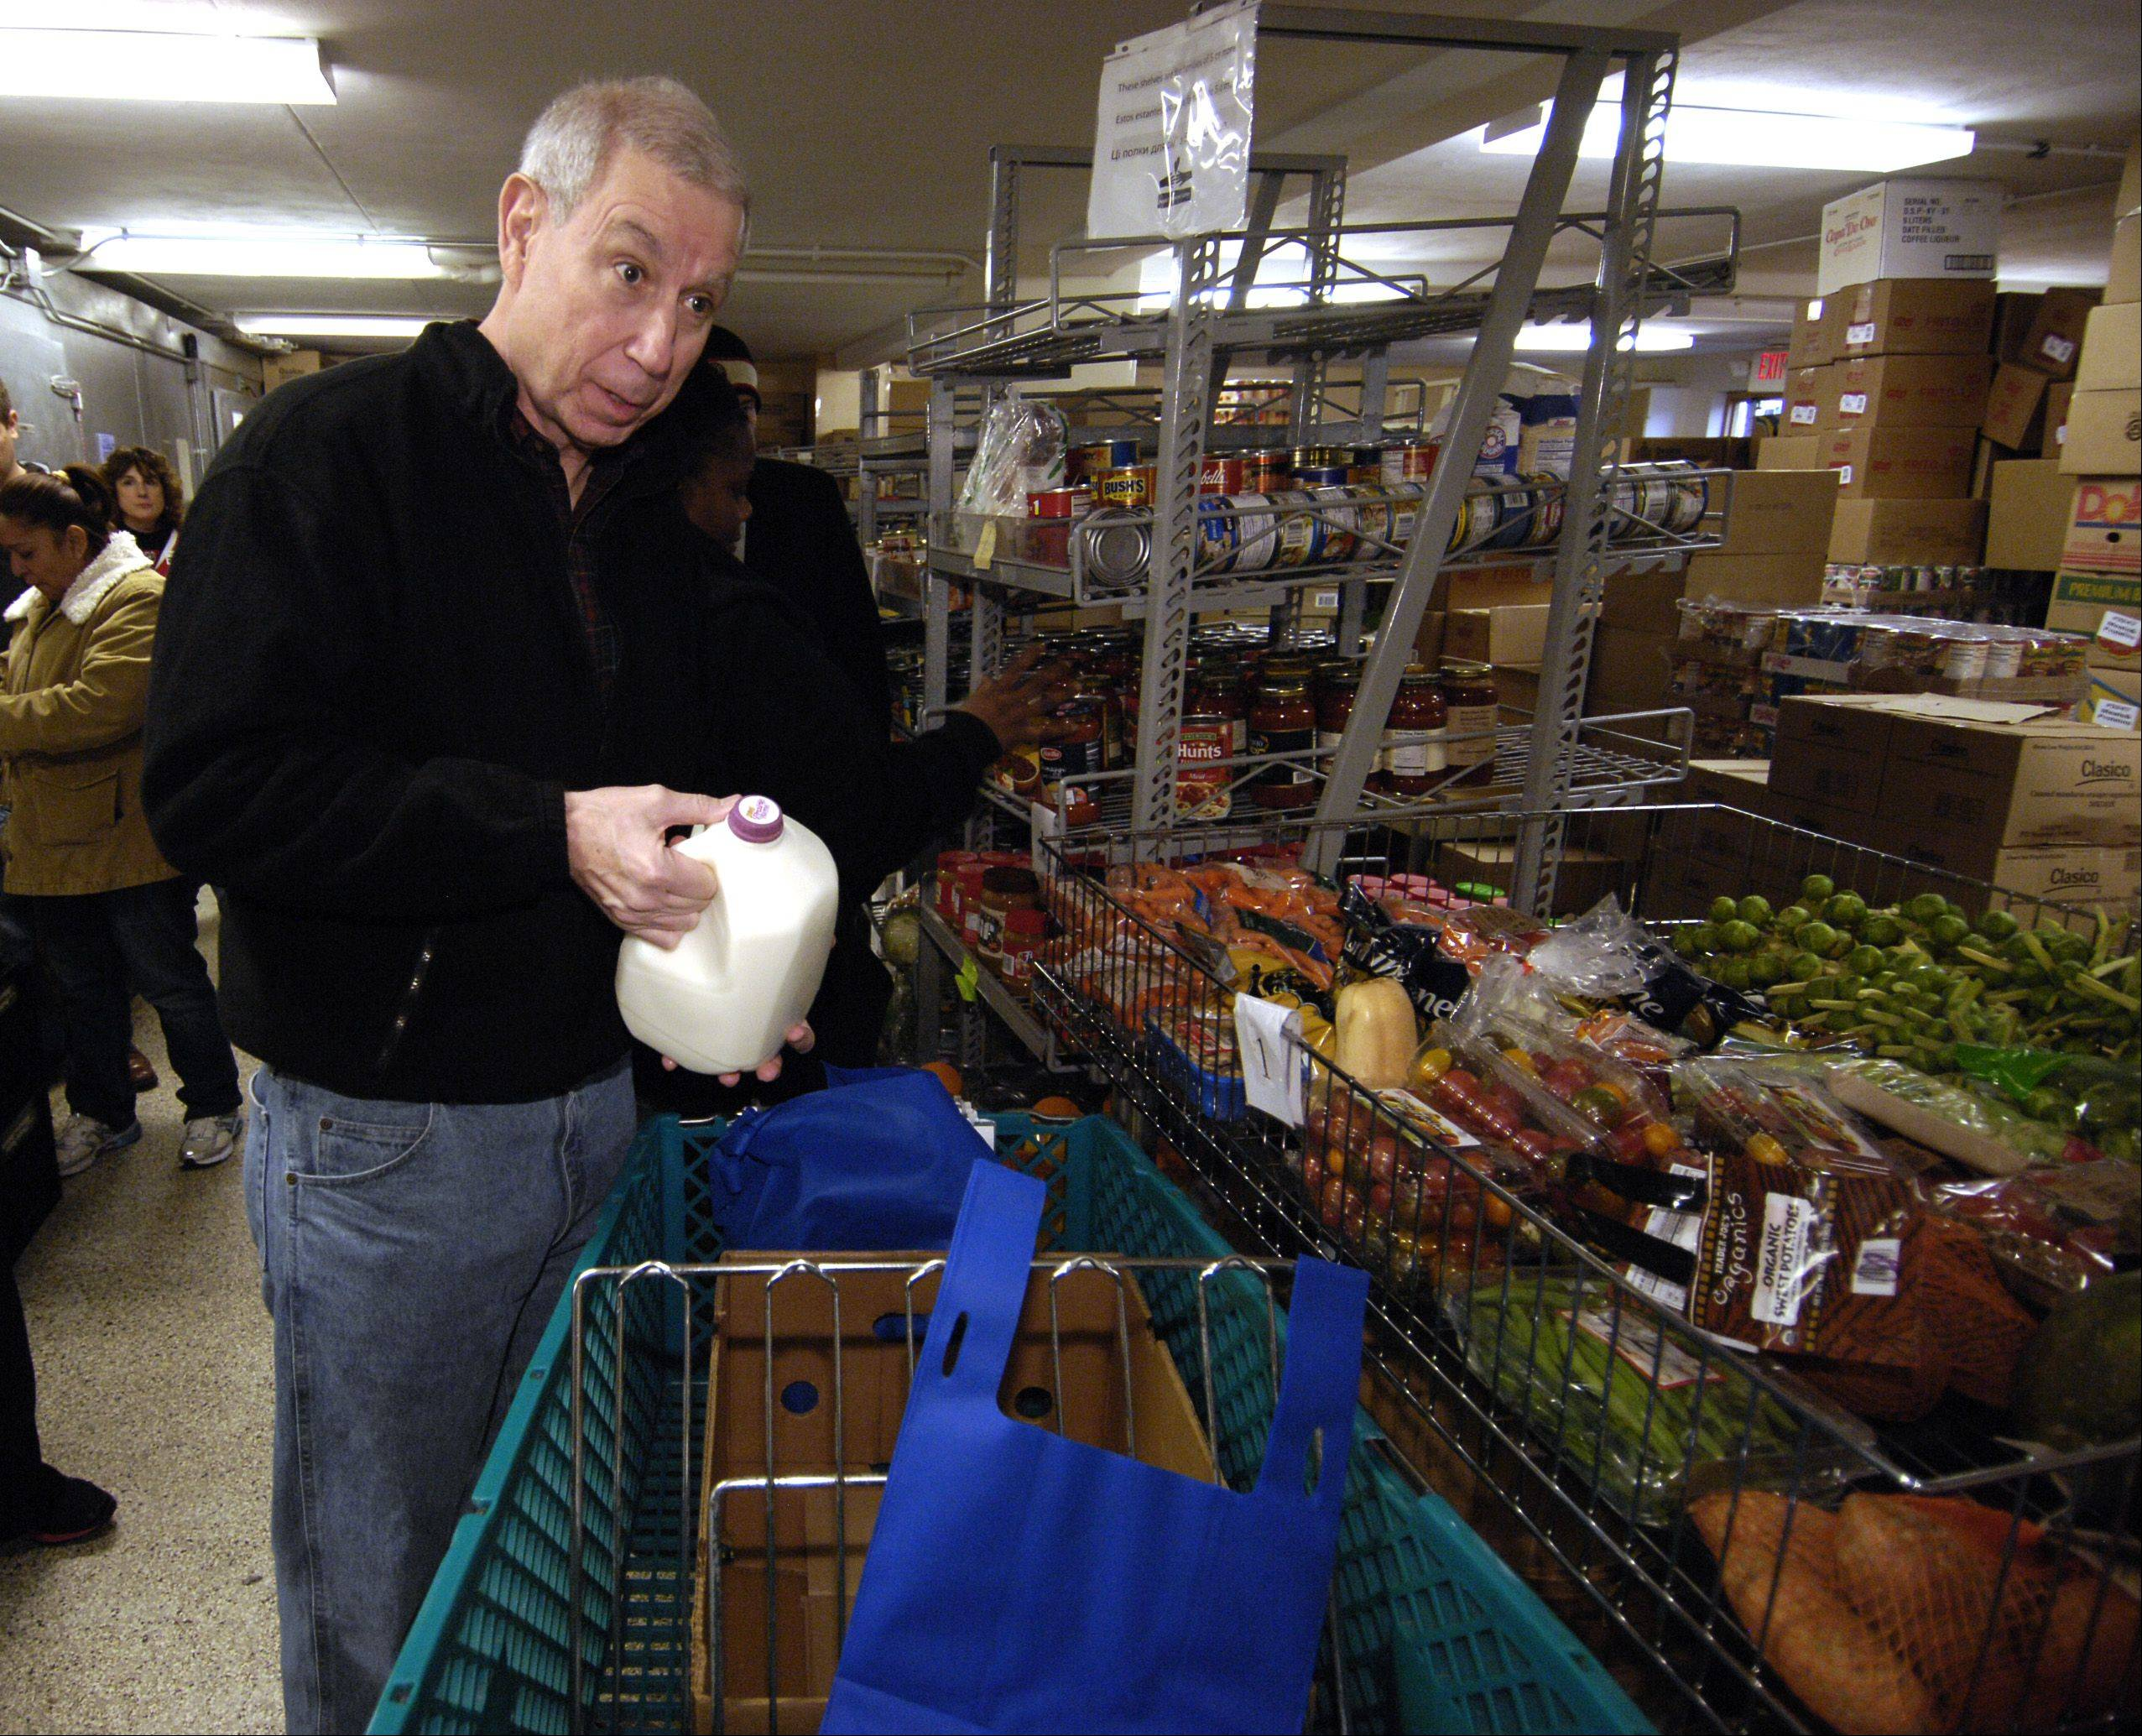 Chicago Blackhawks President and CEO John McDonough helps out Thursday in the food pantry at the People's Resource Center in Wheaton.